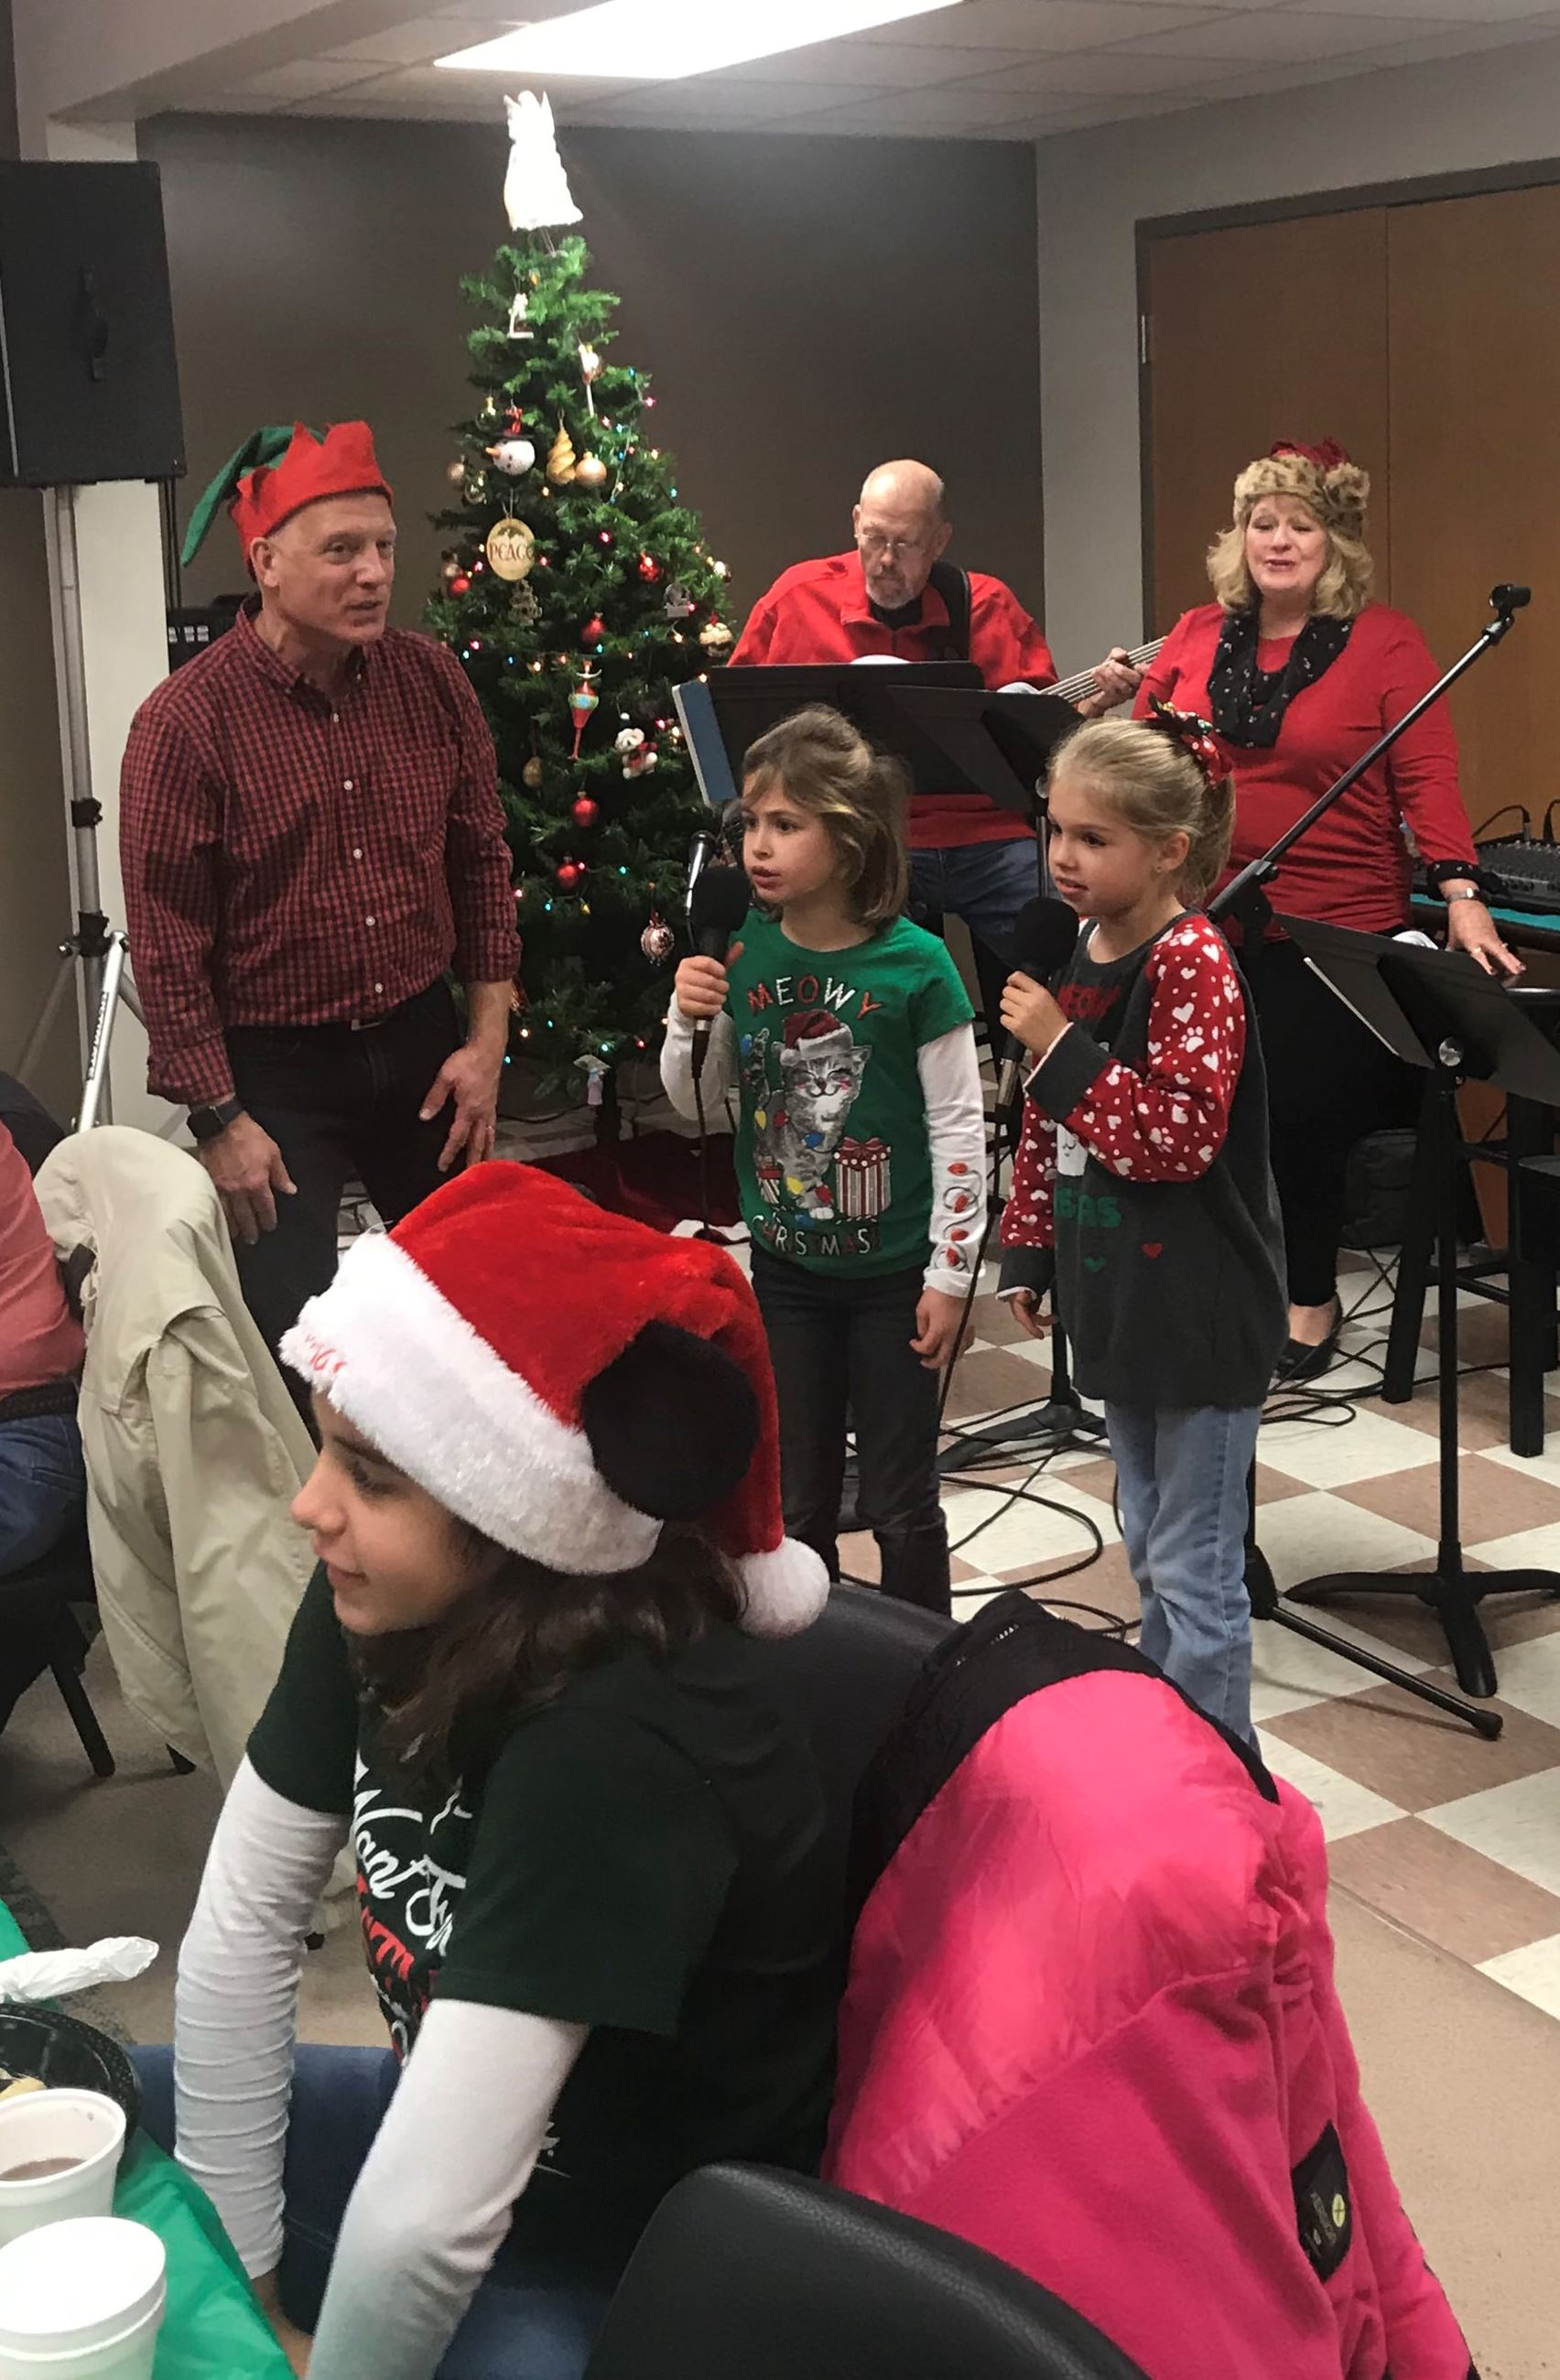 The band and kids singing carols